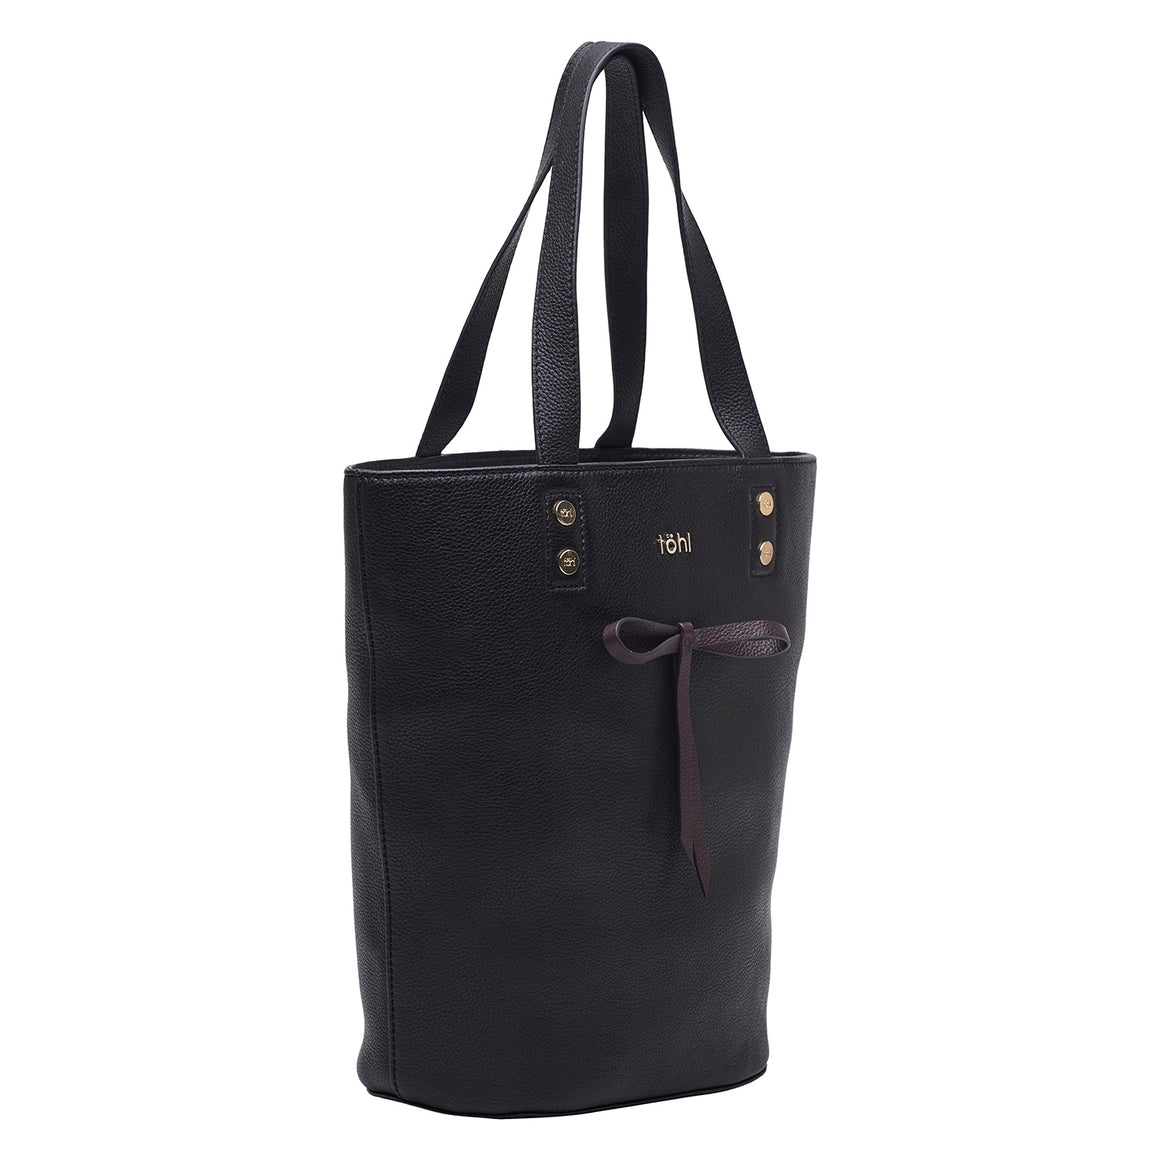 TT 0016 - TOHL RUSSELL WOMEN'S TOTE BAG - CHARCOAL BLACK